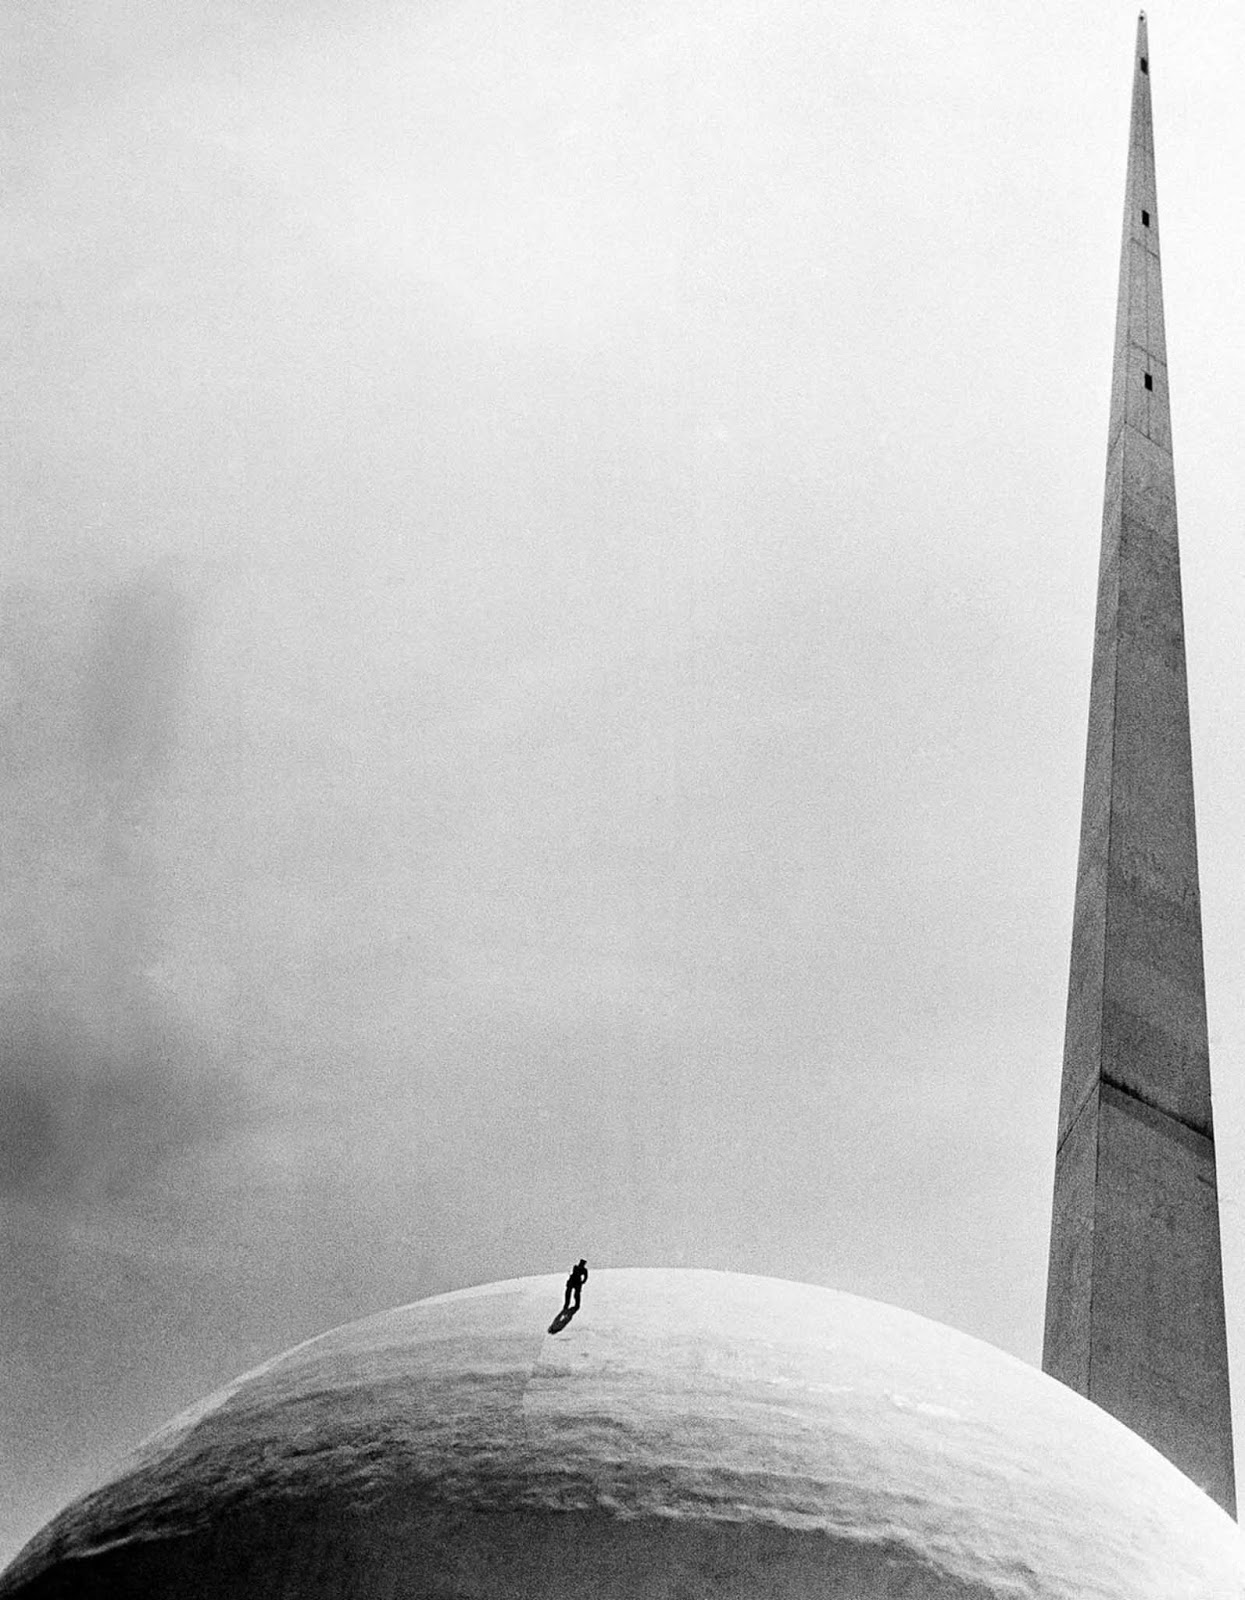 A workman at New York World's Fair repaints the famed Perisphere, on June 6, 1939.